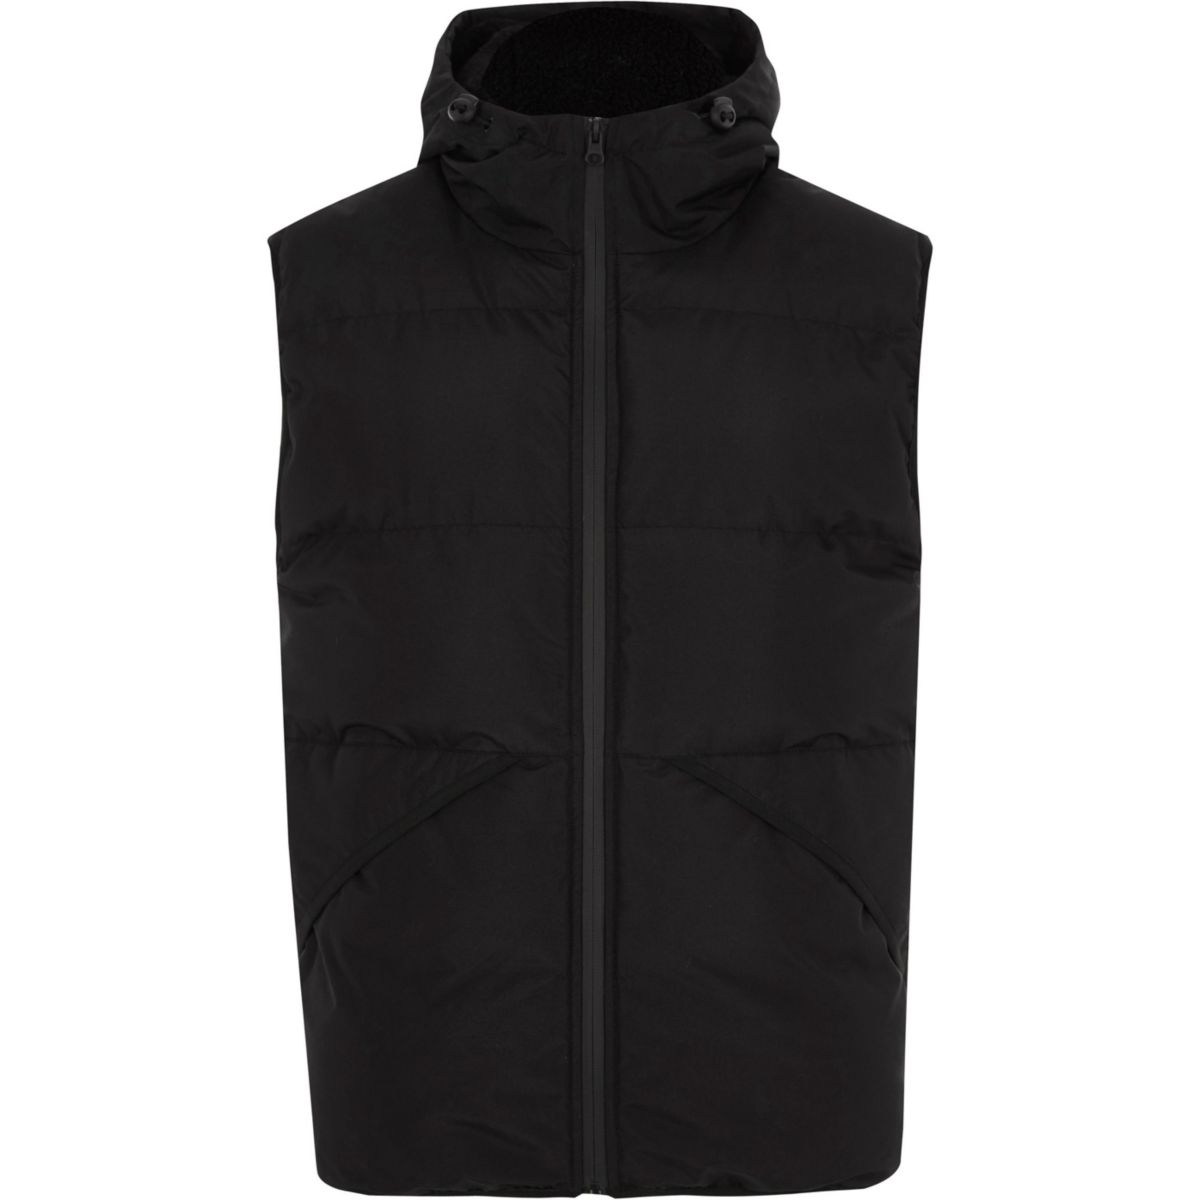 Big and Tall black hooded puffer vest